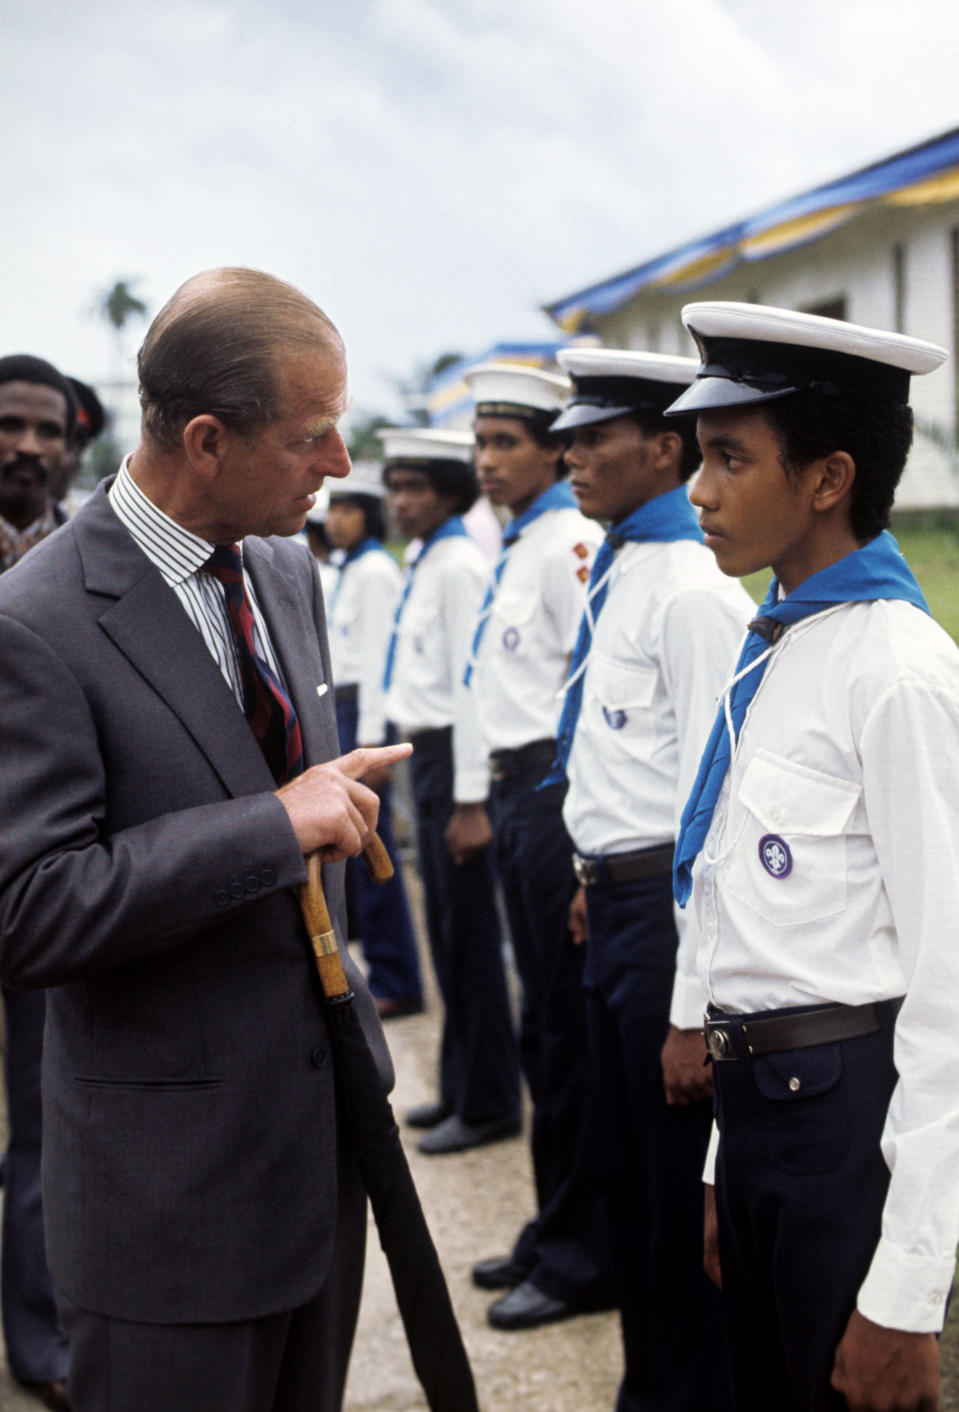 The Duke of Edinburgh talking with a sea cadet when he and Queen Elizabeth II went on a walkabout during a visit to Bridgetown, Barbados, during her Silver Jubilee tour of the Caribbean.